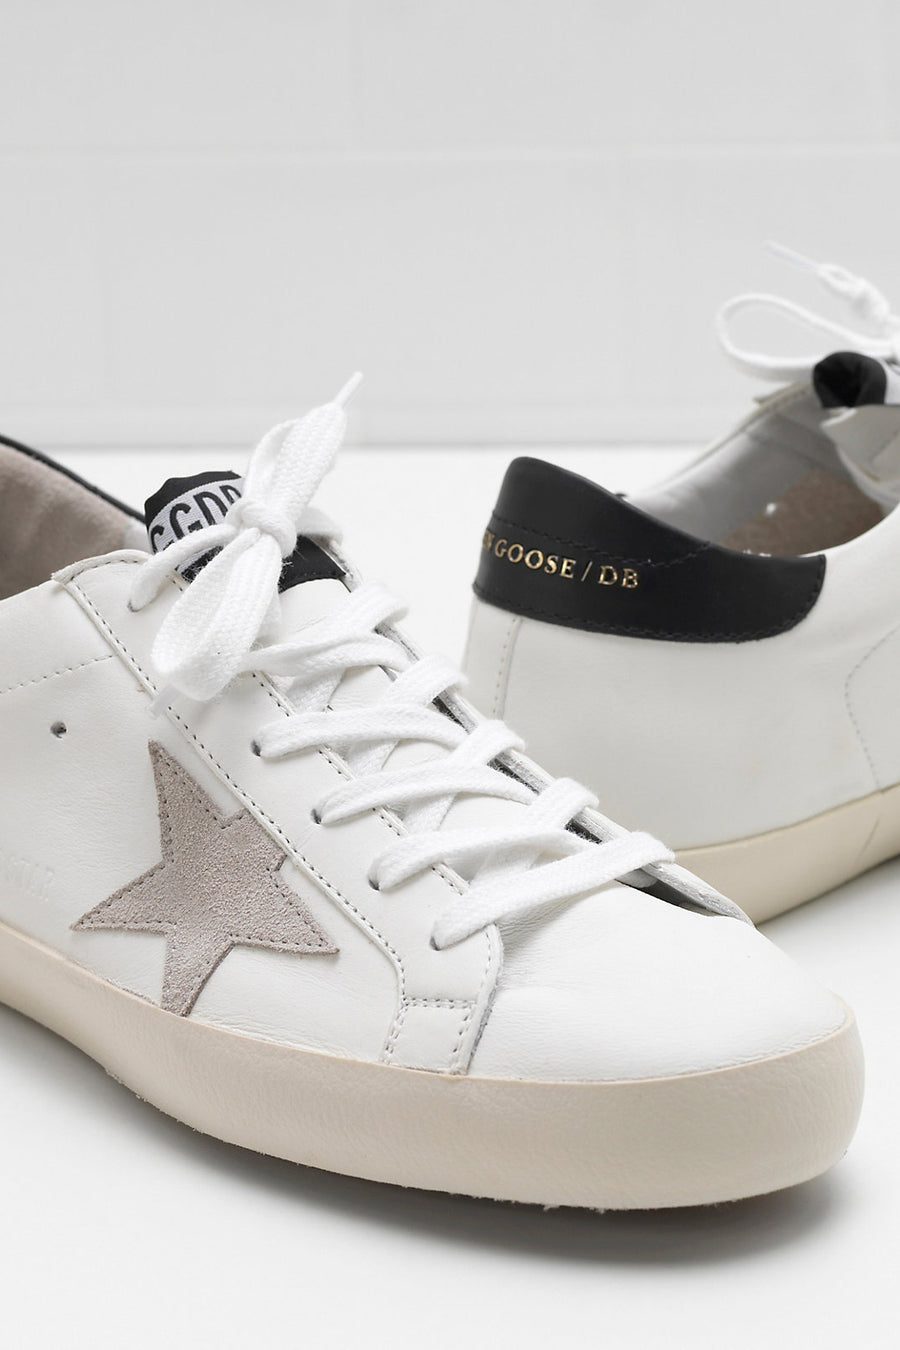 Superstar - White w/ Black Gold Lettering - Pavilion